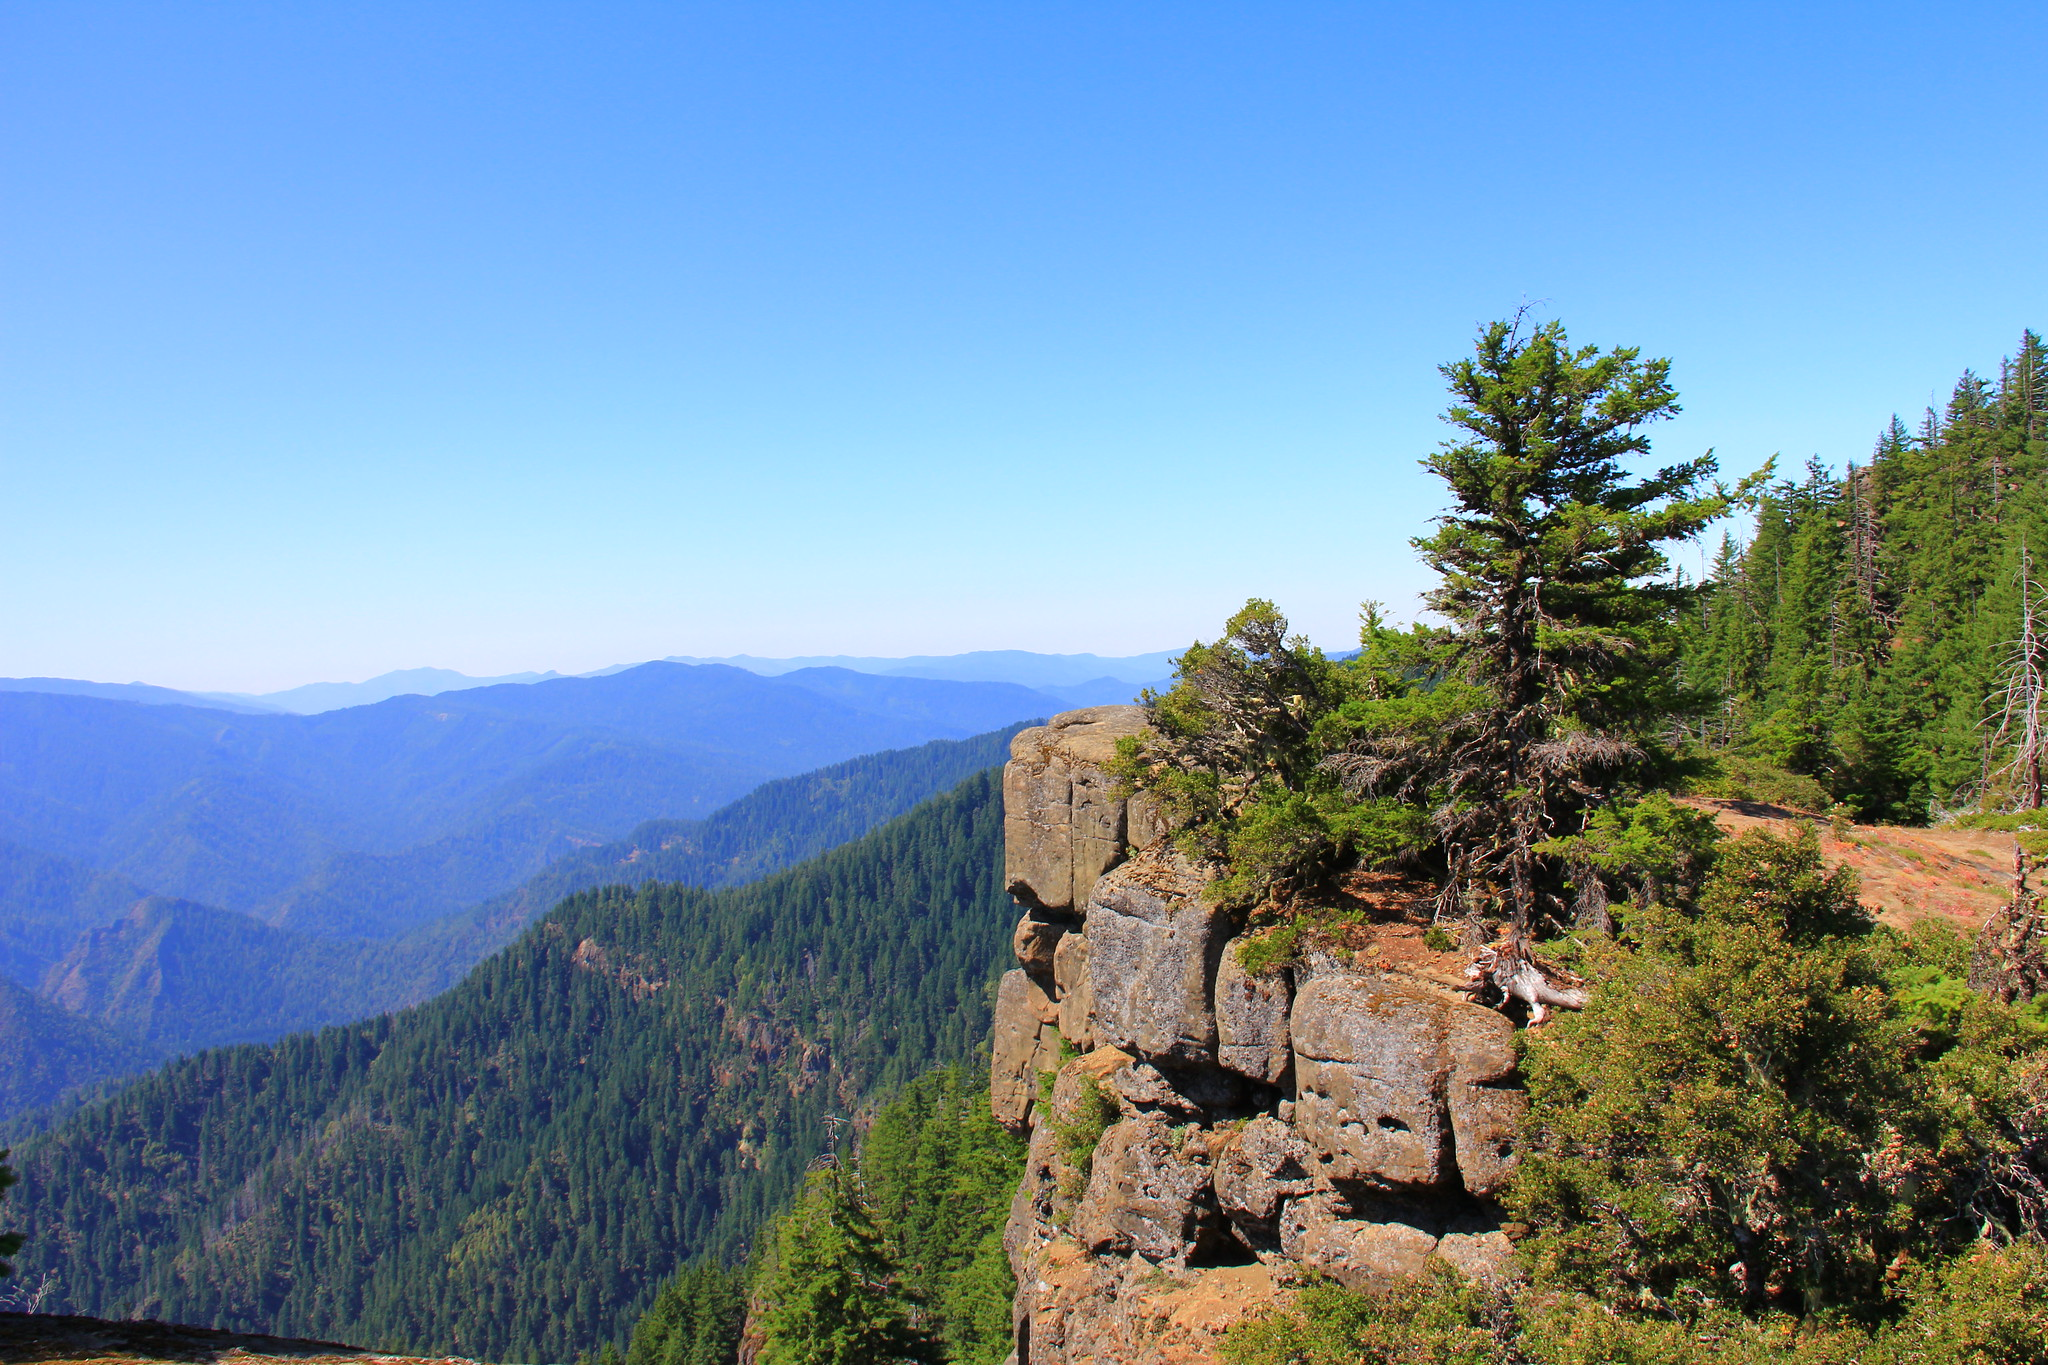 Off Hanging Rock, from BLM Oregon, on Flickr